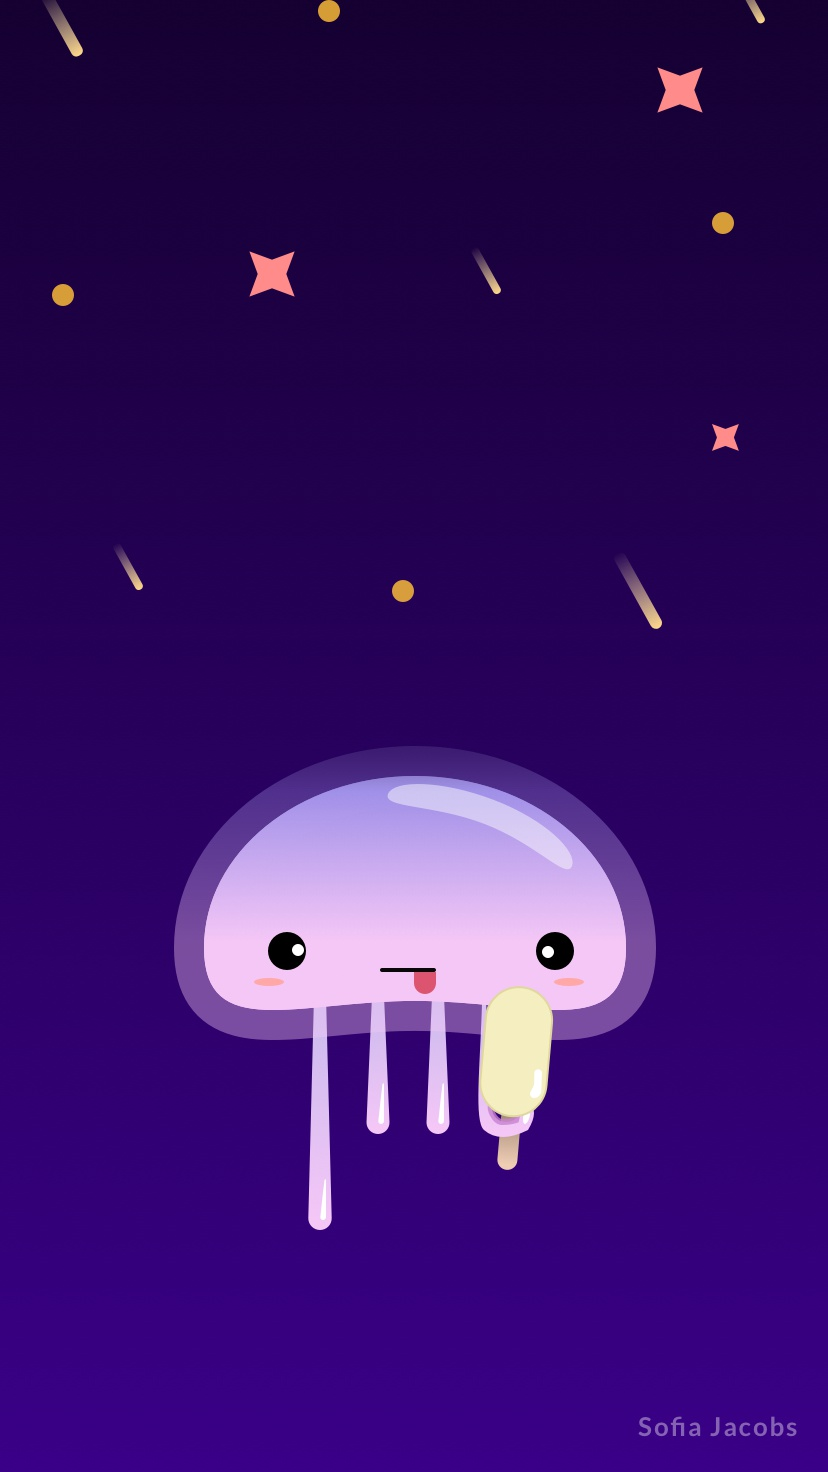 Jellyfish Wallpaper Iphone By Sofia Jacobs On Dribbble